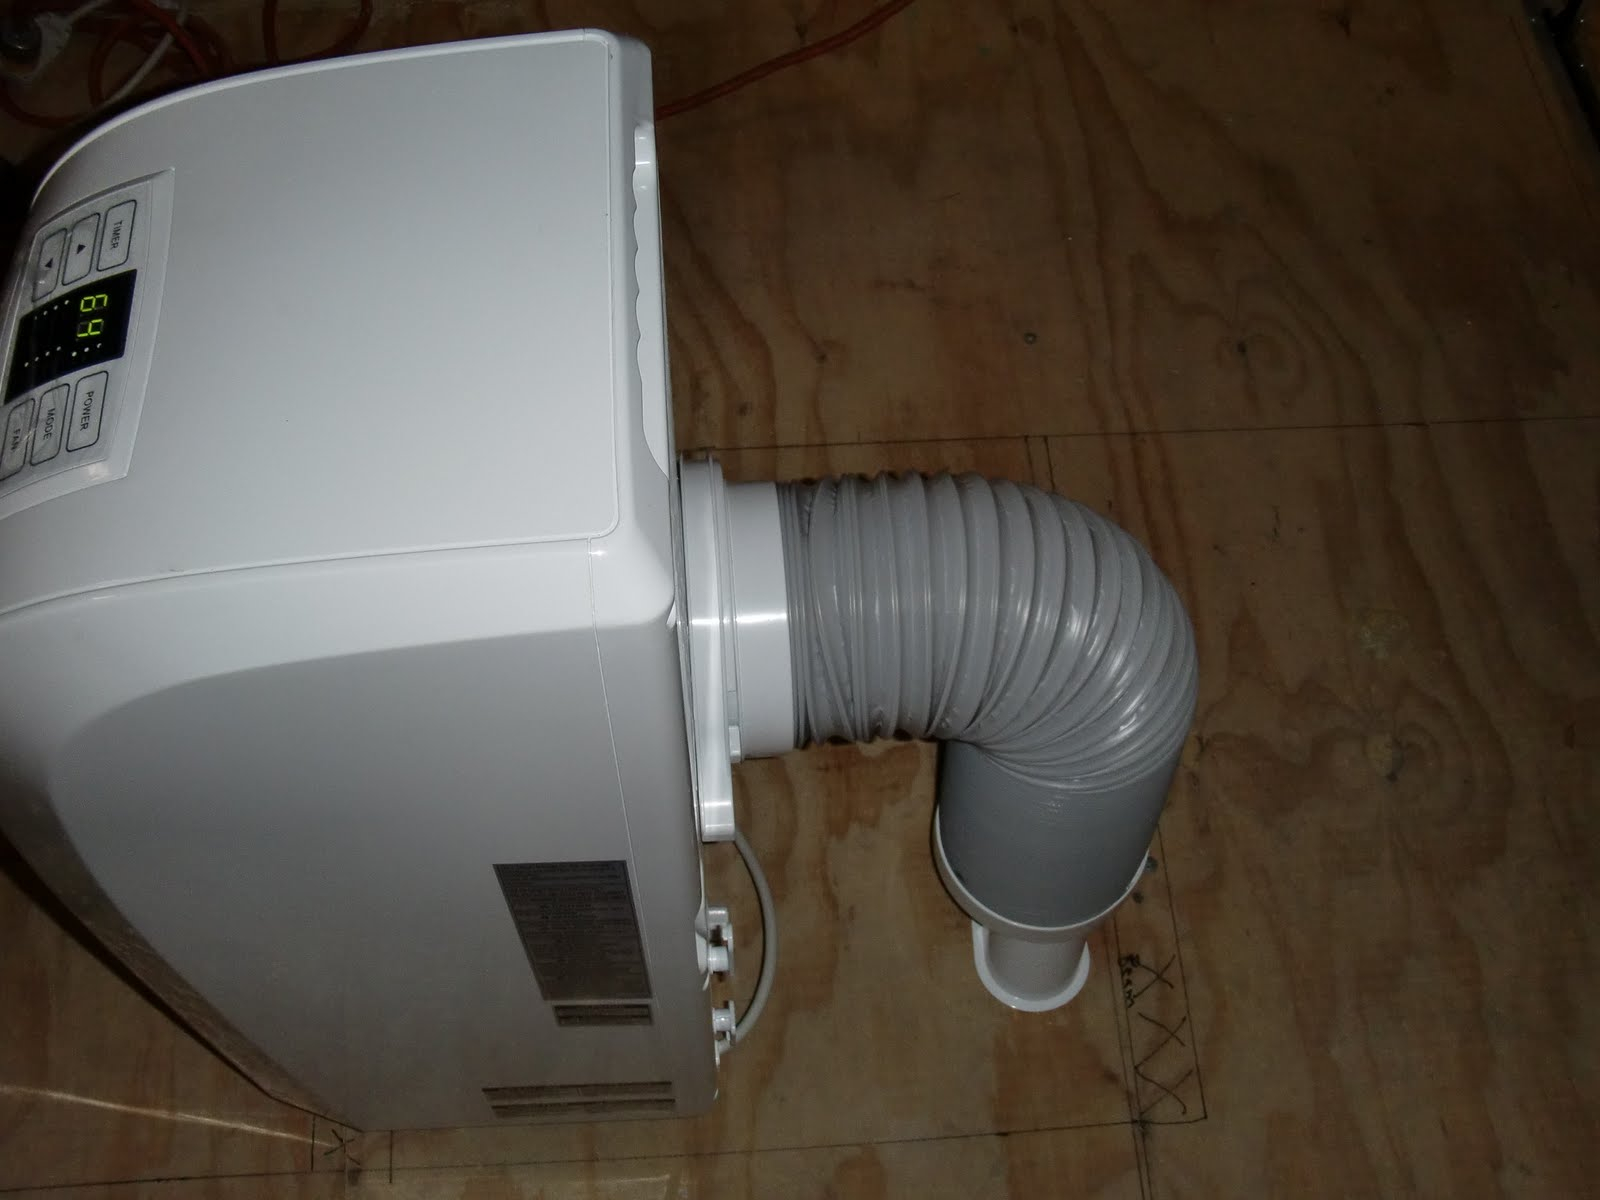 Portable Air Conditioner Attic Venting • Attic Ideas